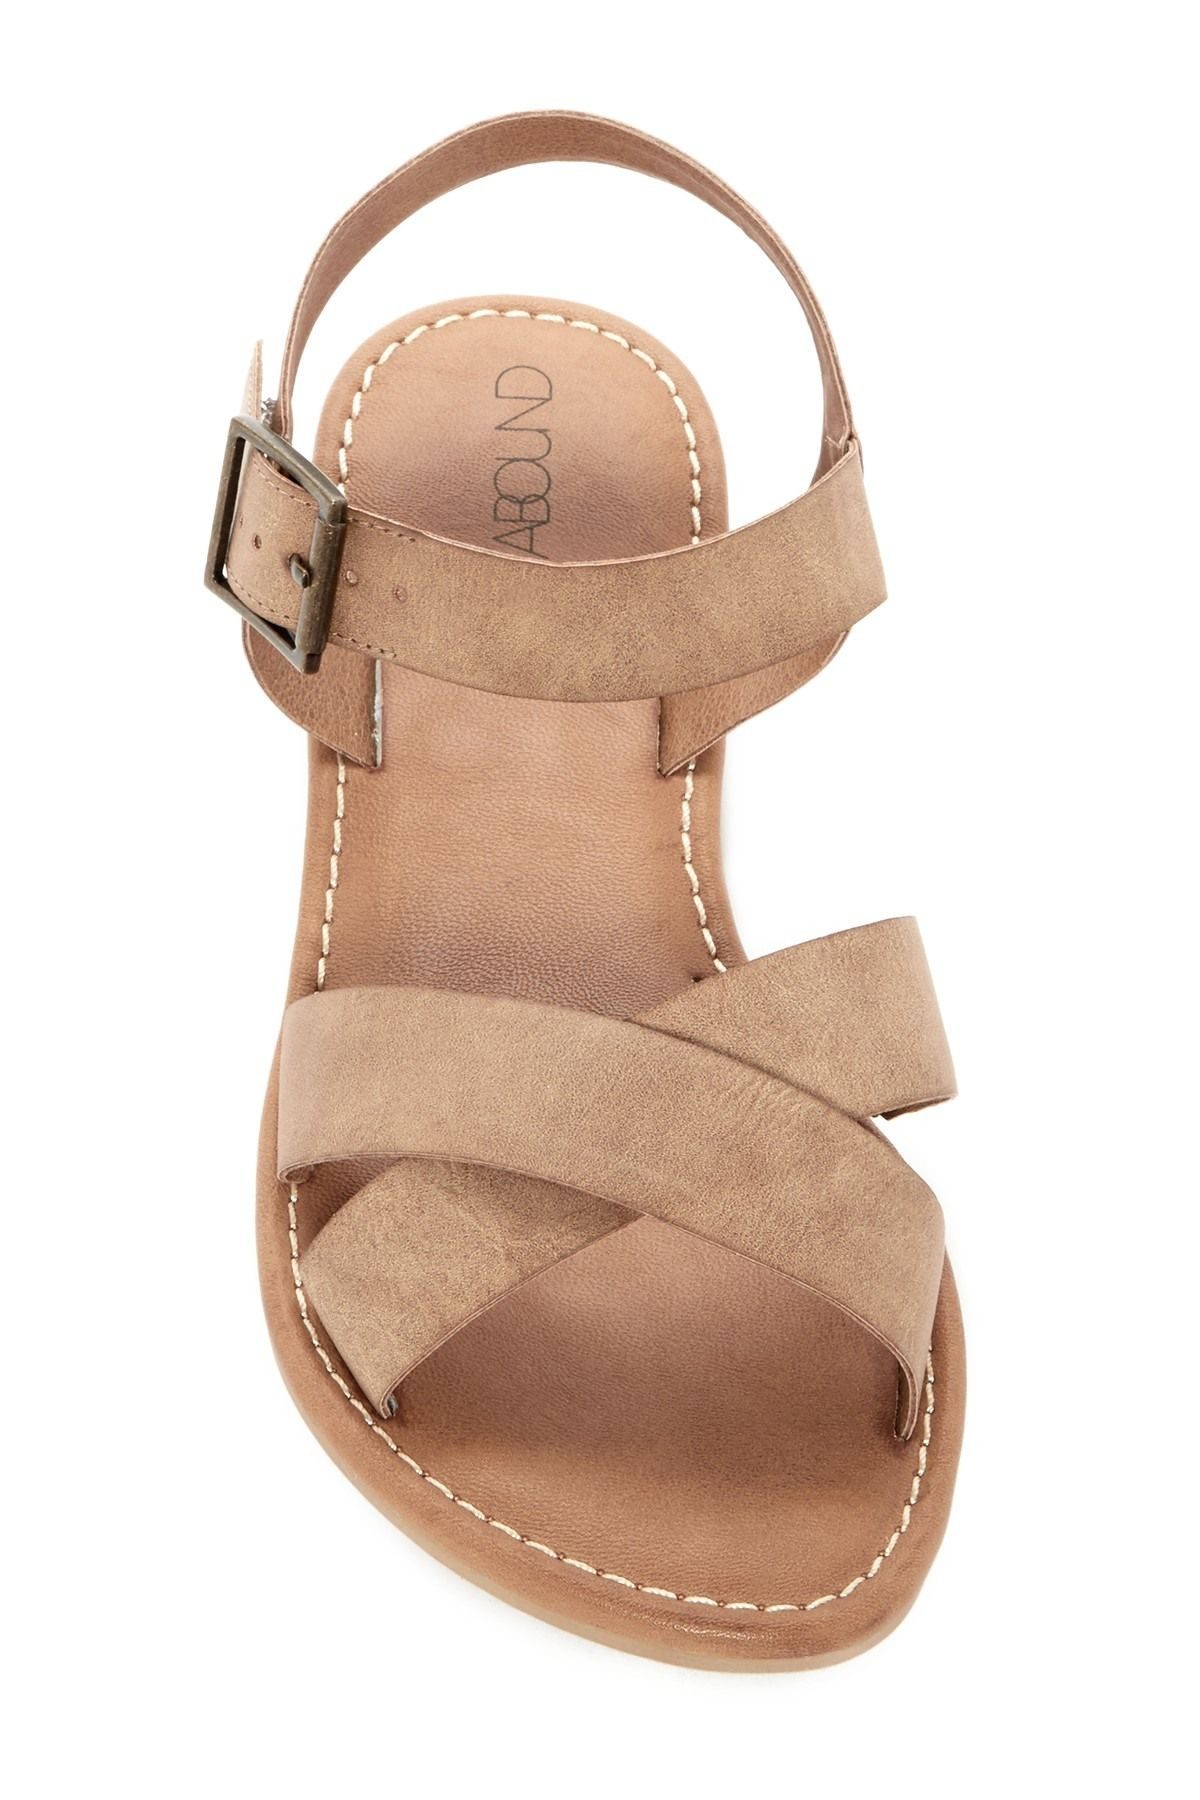 e2b5dd0f8917f3 Abound - Meesha Flat Sandal - Wide Width Available. Free Shipping on orders  over  100.